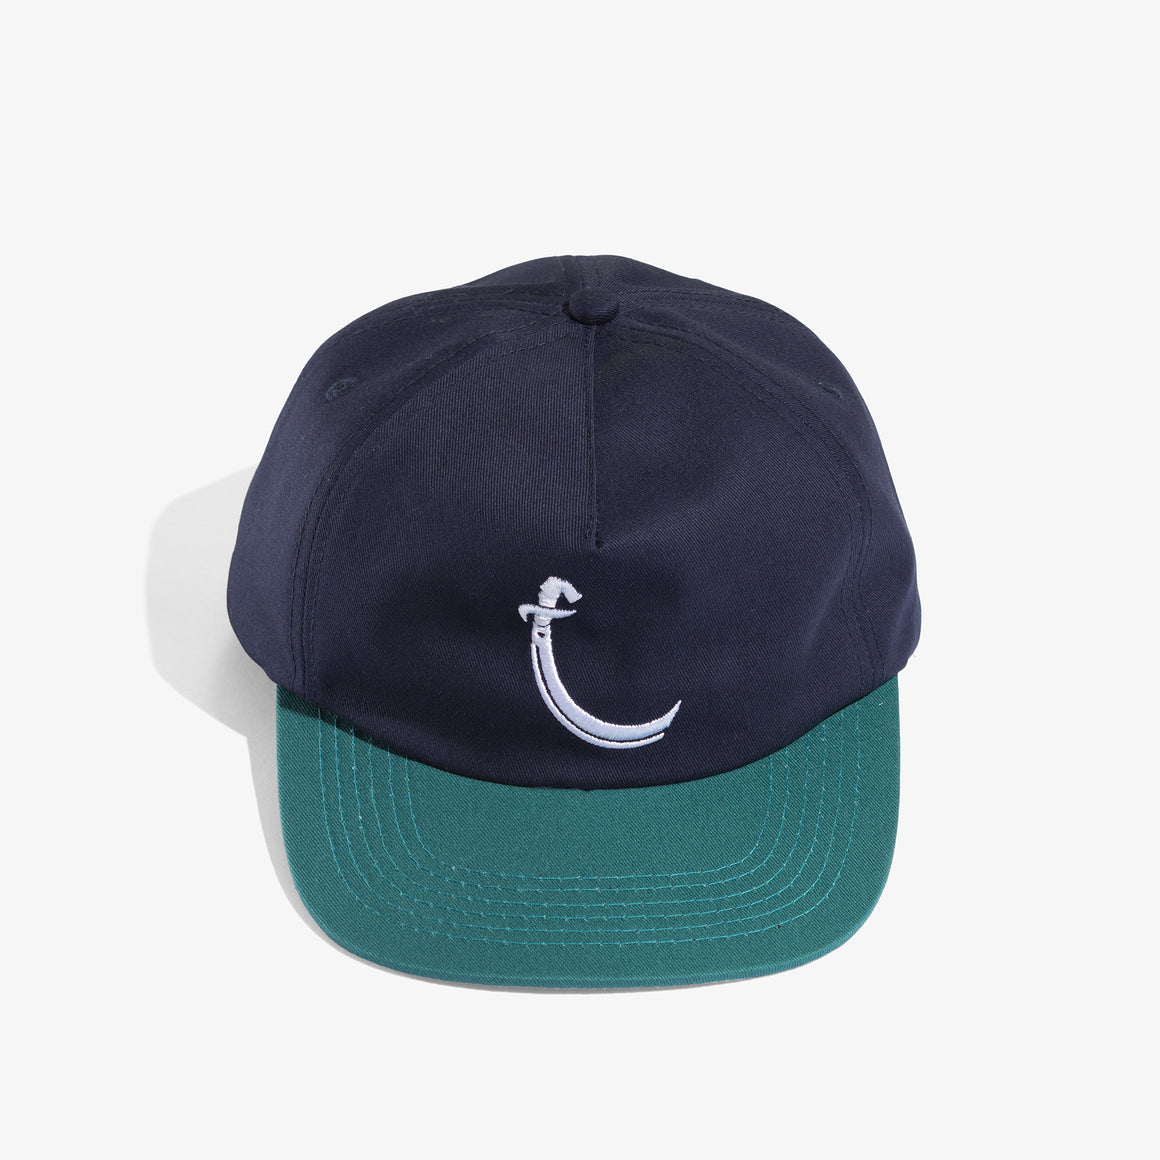 510 SWORD 5 PANEL (NAVY/TEAL)